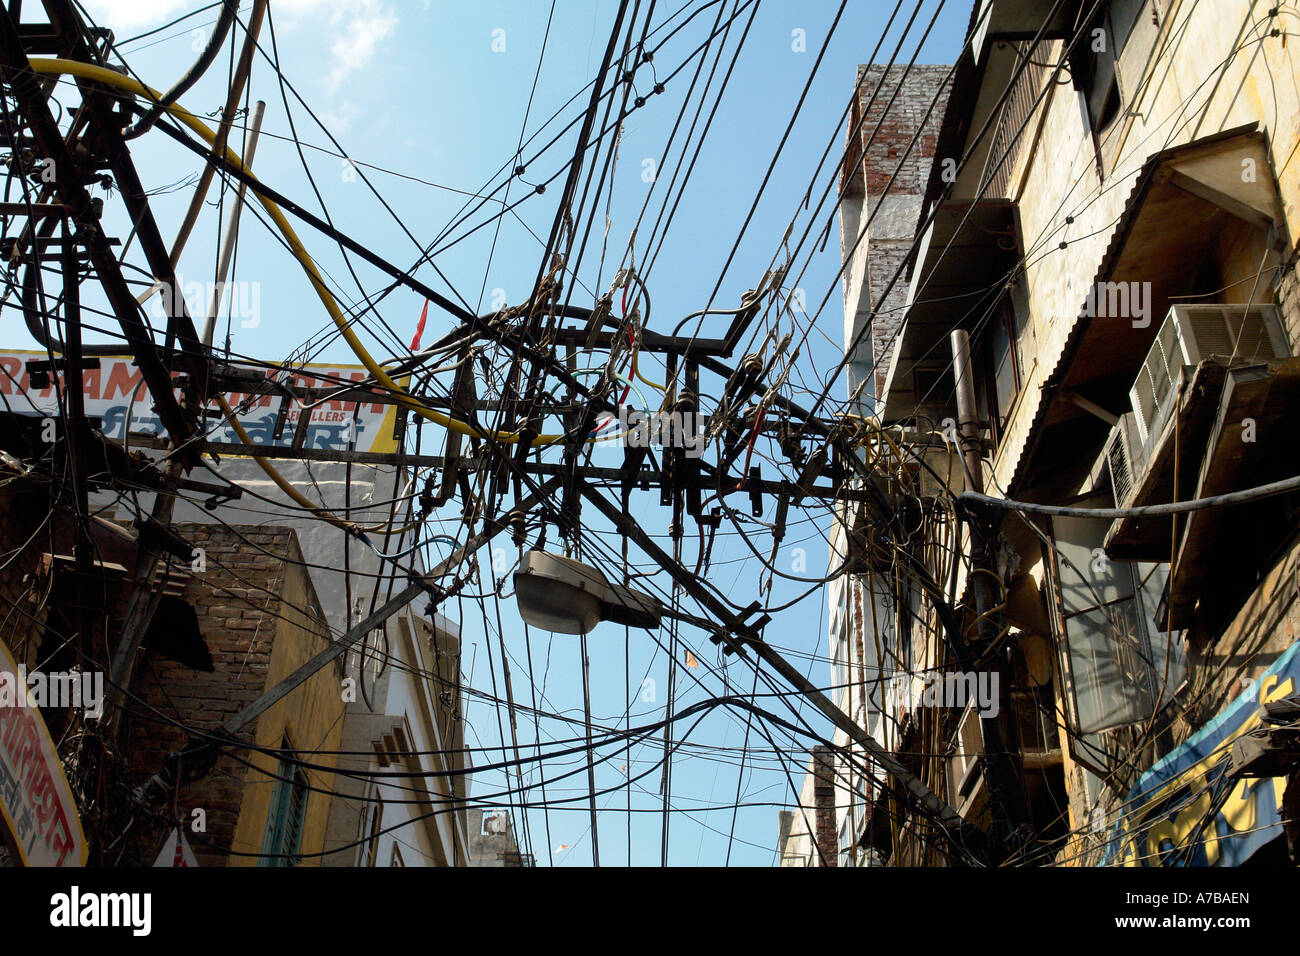 Old Electrical Wiring Stock Photos & Old Electrical Wiring Stock ...